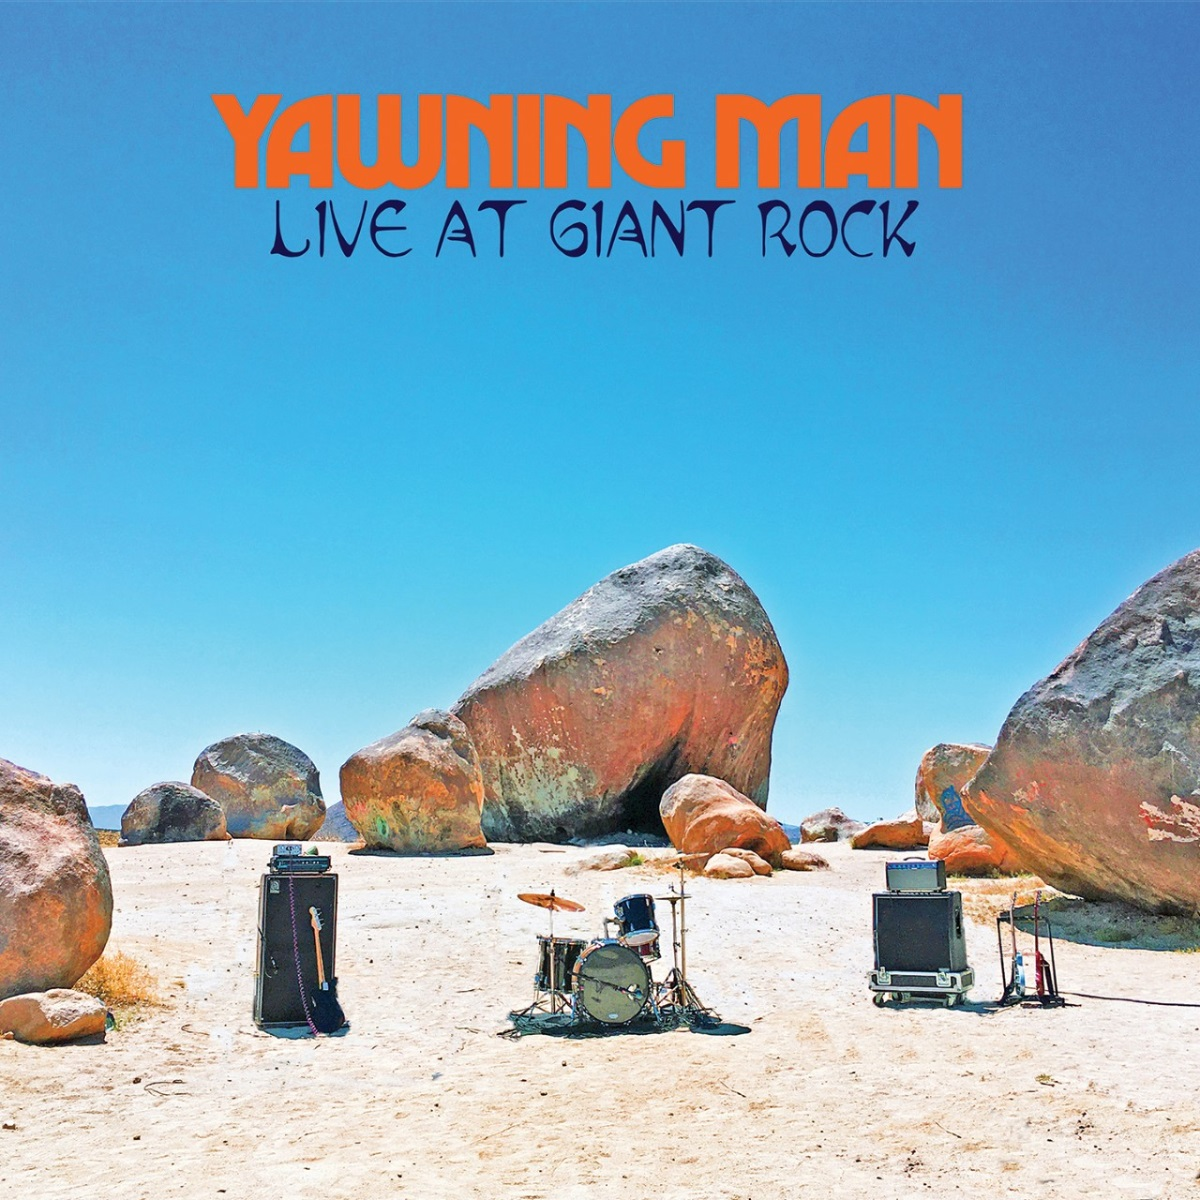 yawning man live at giant rock